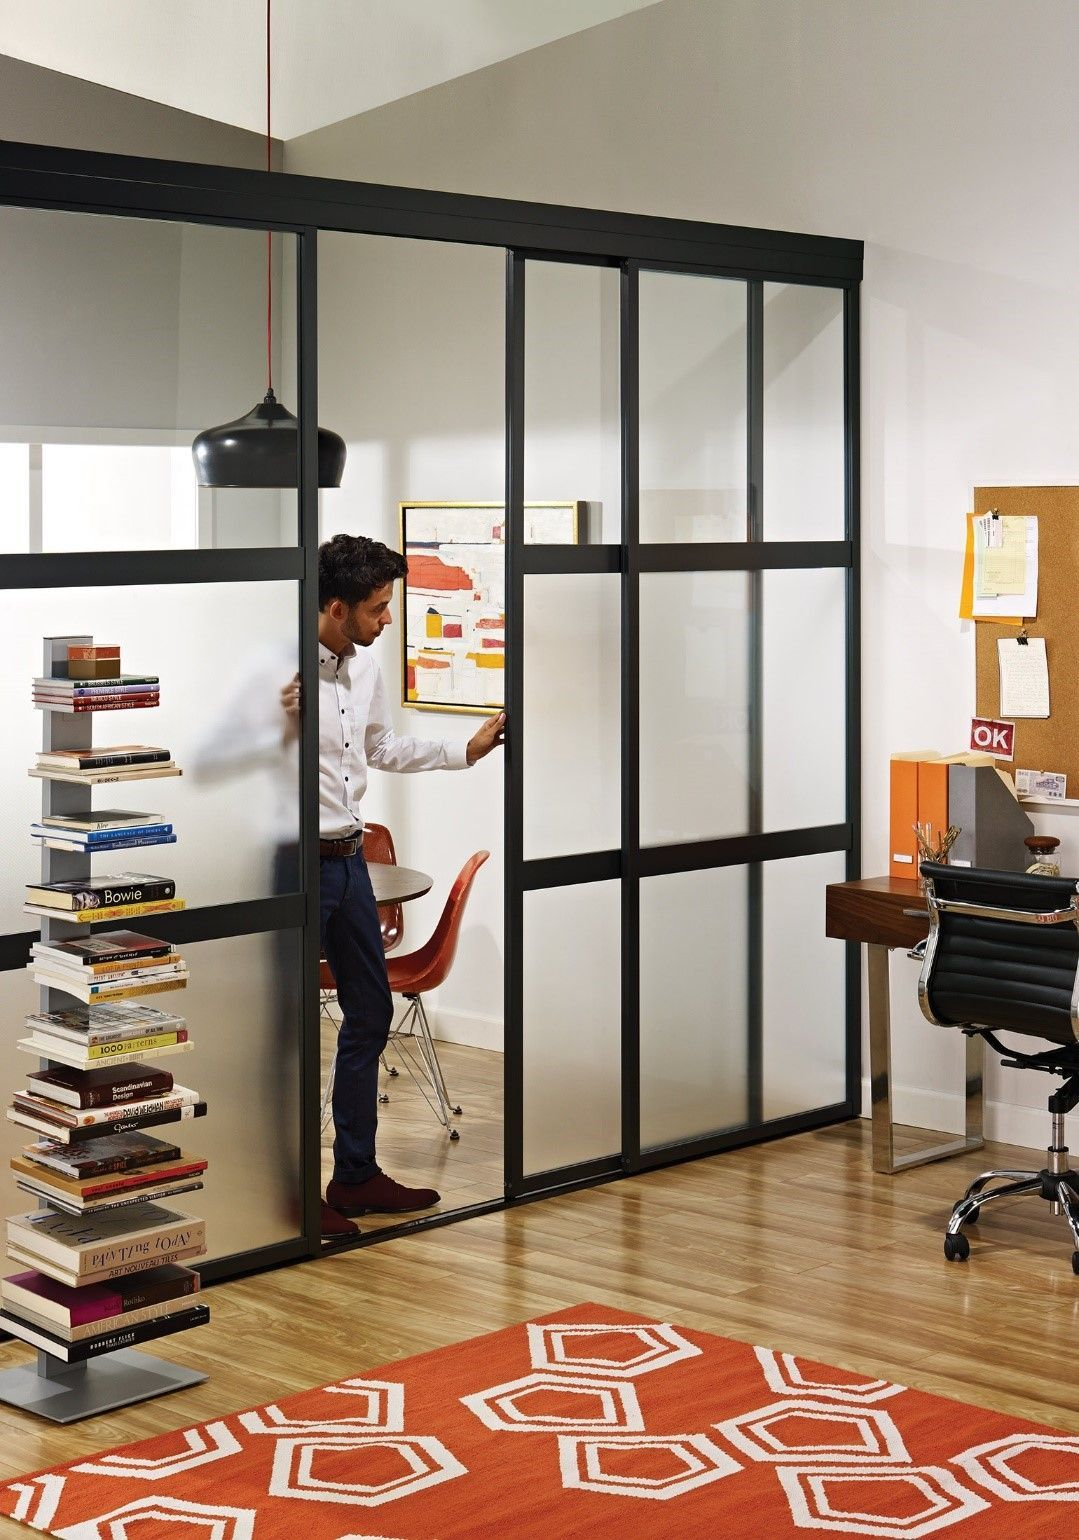 These Sliding Glass Room Dividers Are Used Here To Create A New Home Office.  This